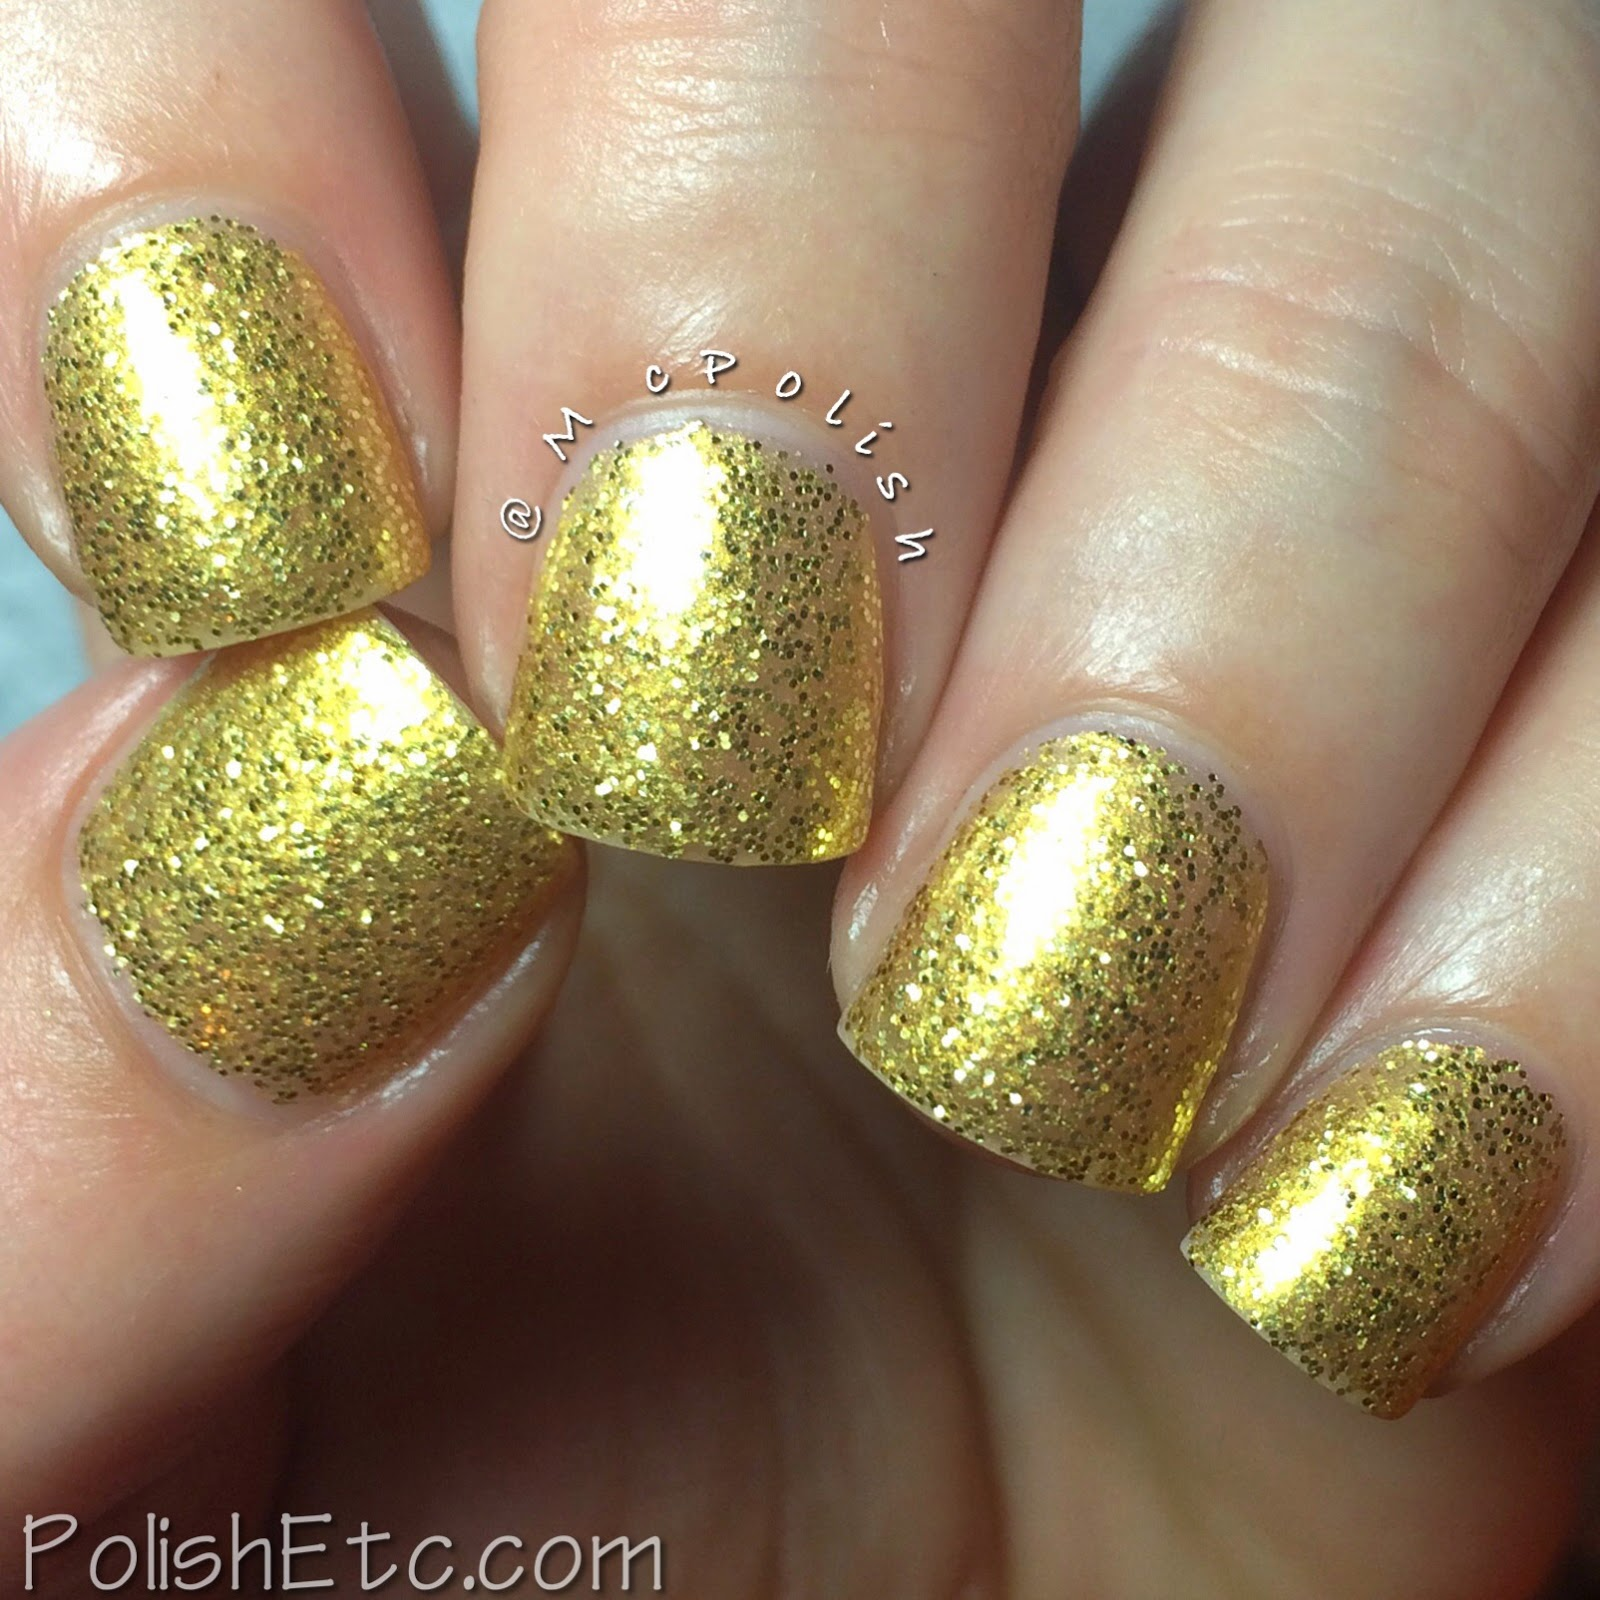 Tillie Polish Glamorous Collection - McPolish - Glam Squad